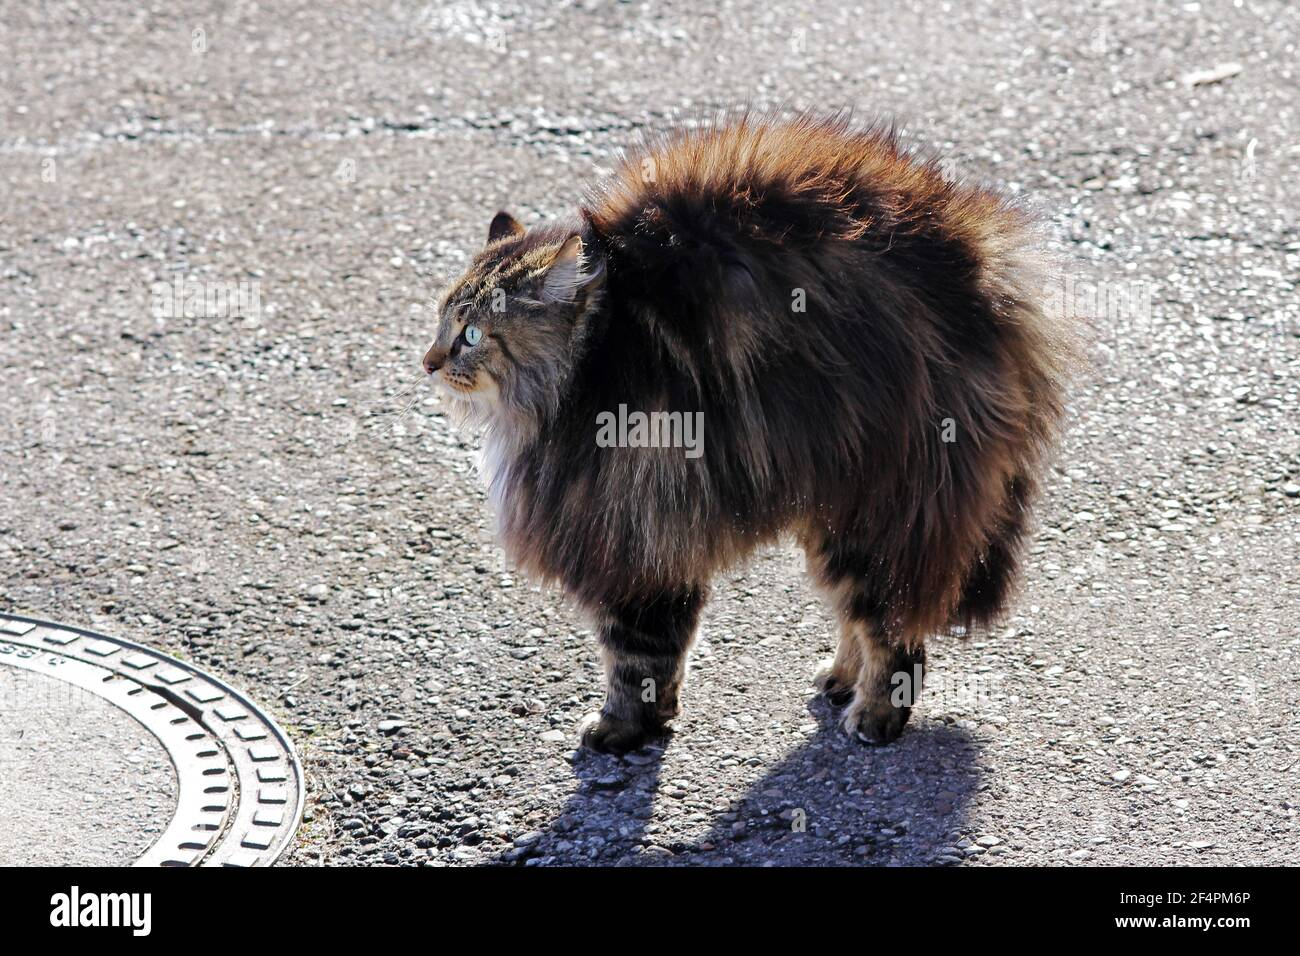 A cat threatens and makes a cat hump. A cat is afraid and hisses Stock Photo